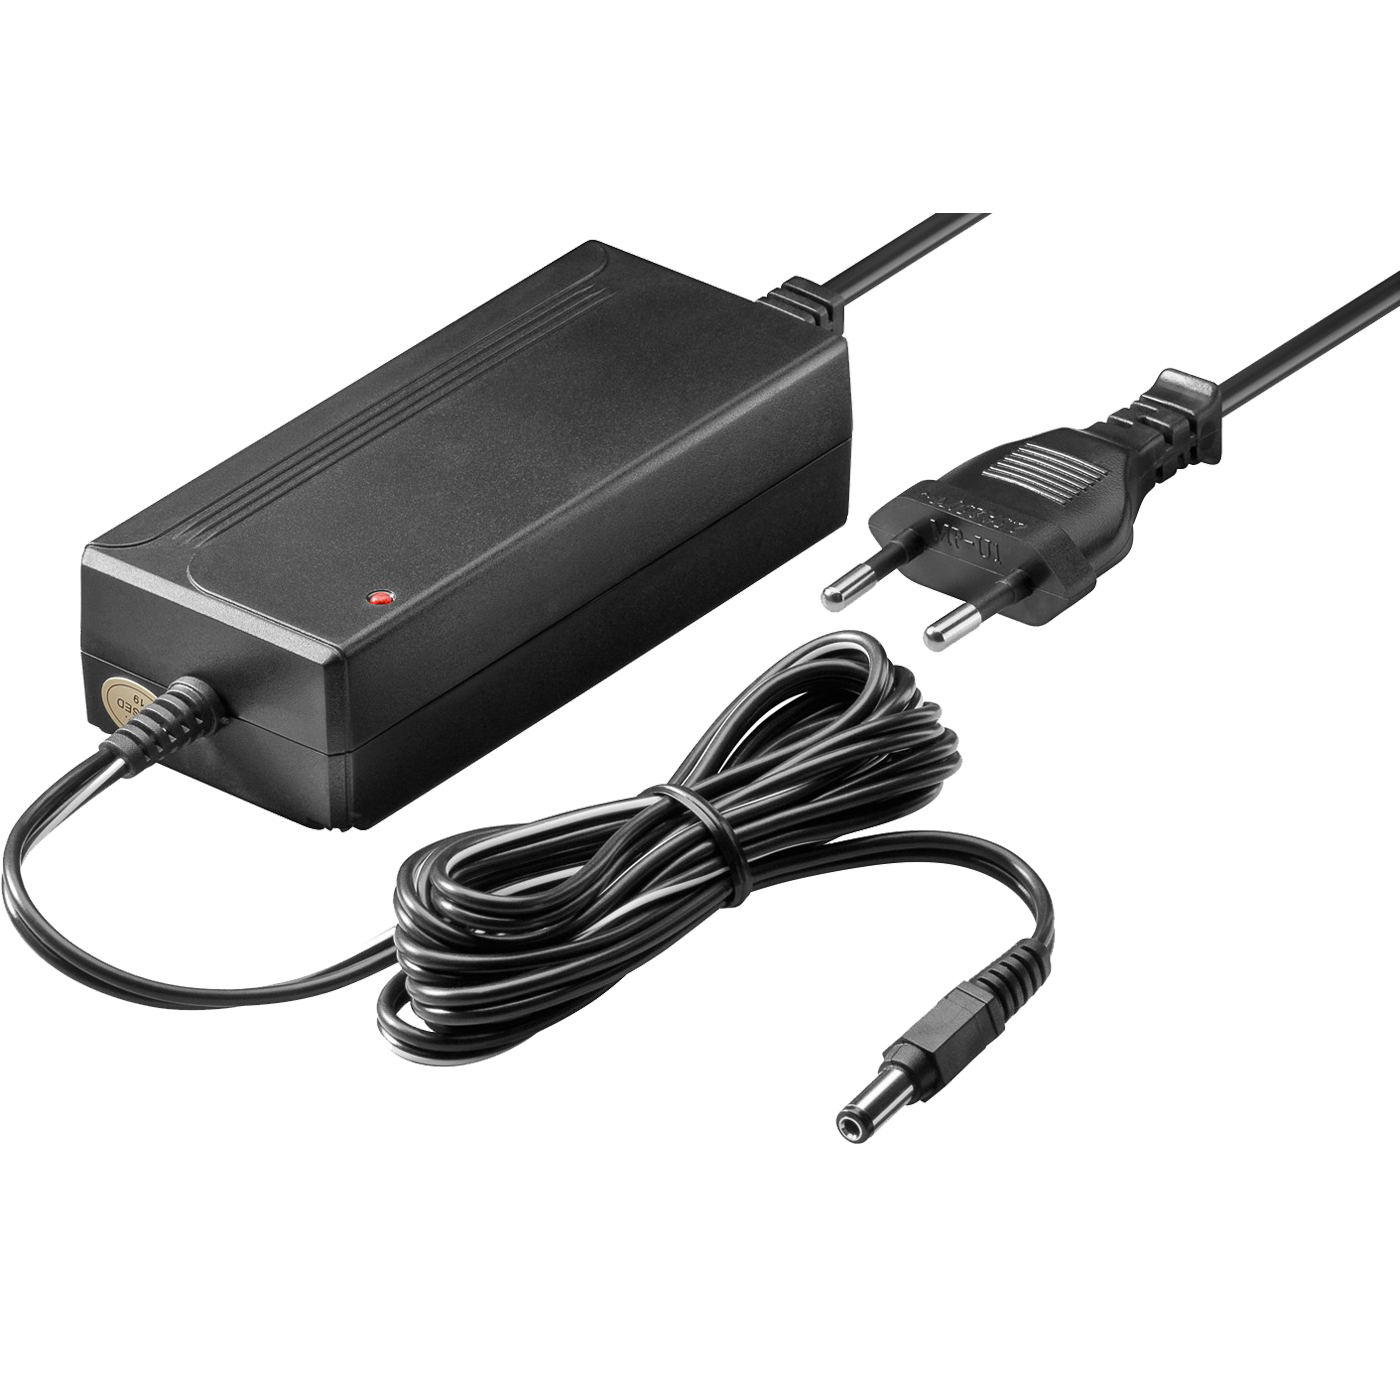 Eule - Adapter 12V/2A